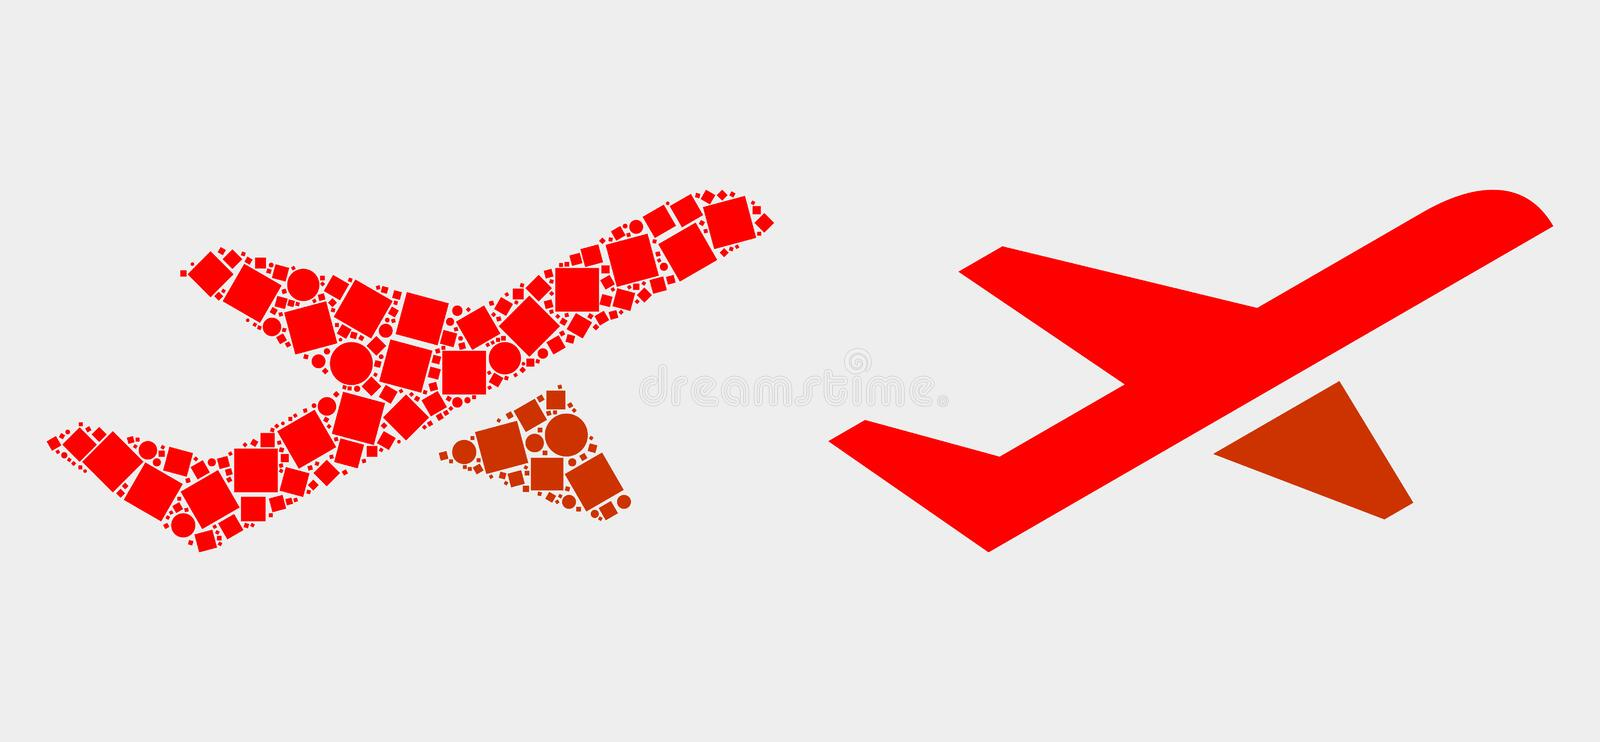 Dot and Flat Vector Airplane Takeoff Icon. Pixel and flat airplane takeoff icons. Vector mosaic of airplane takeoff combined of random square elements and circle stock illustration